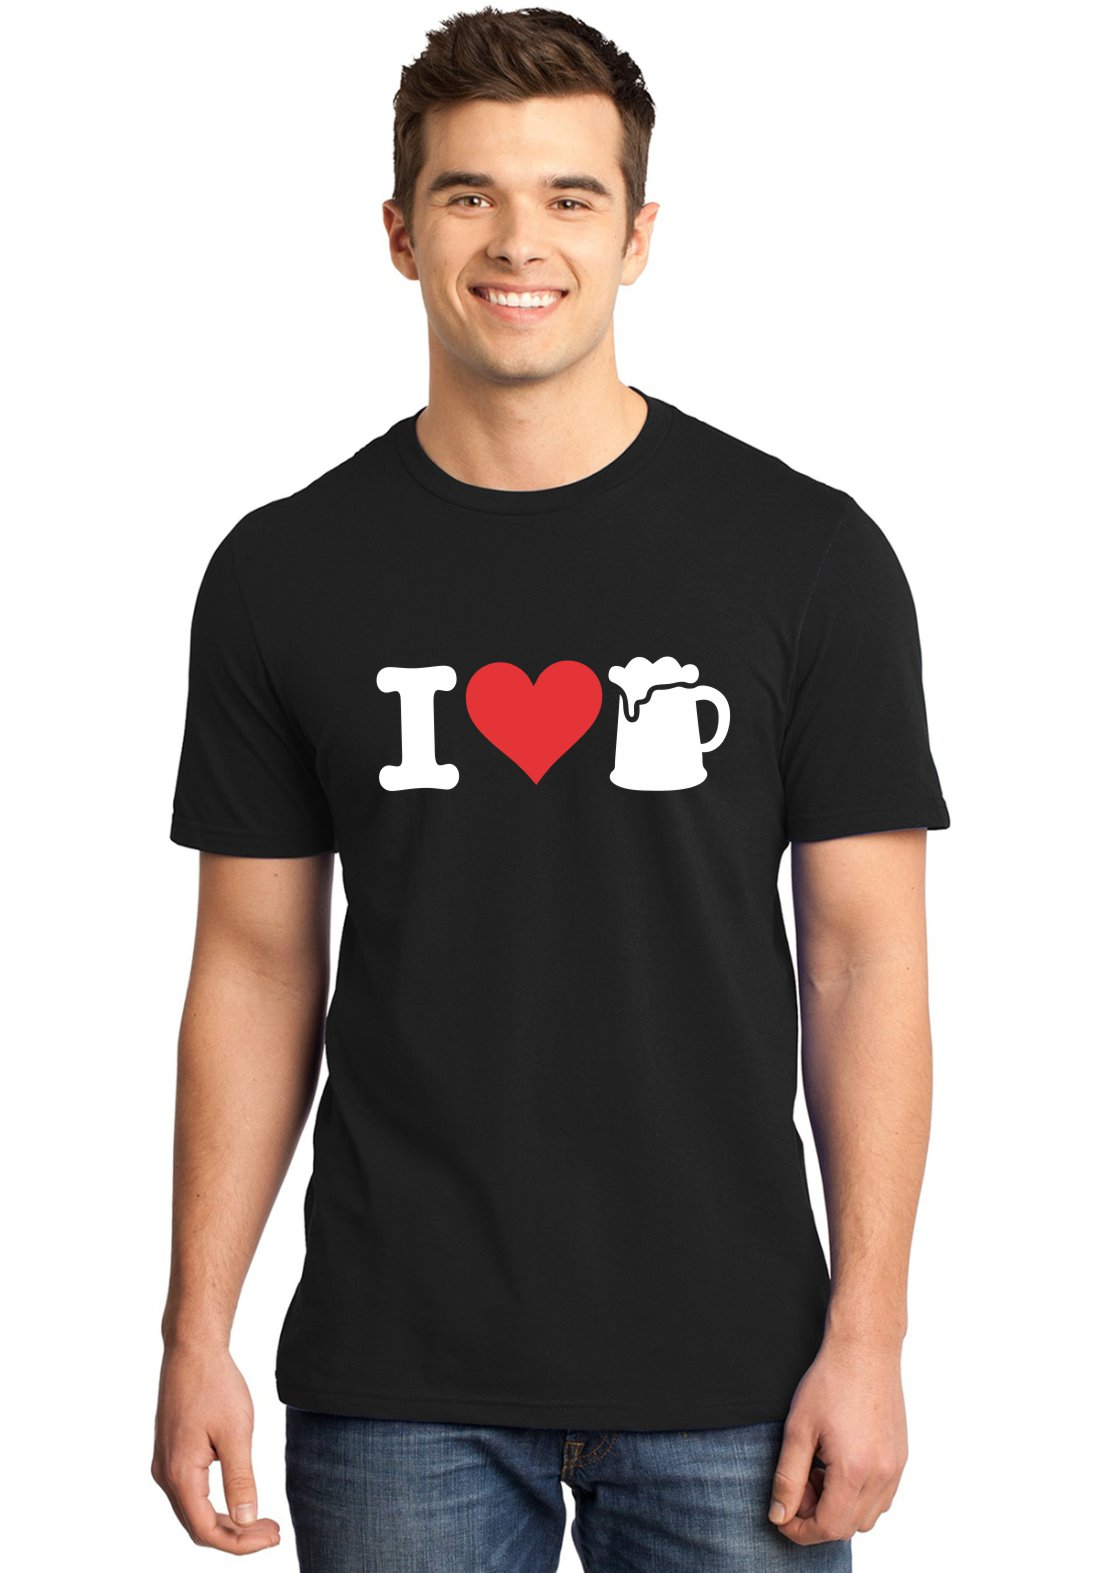 Camiseta Masculin I Love Beer ER_019